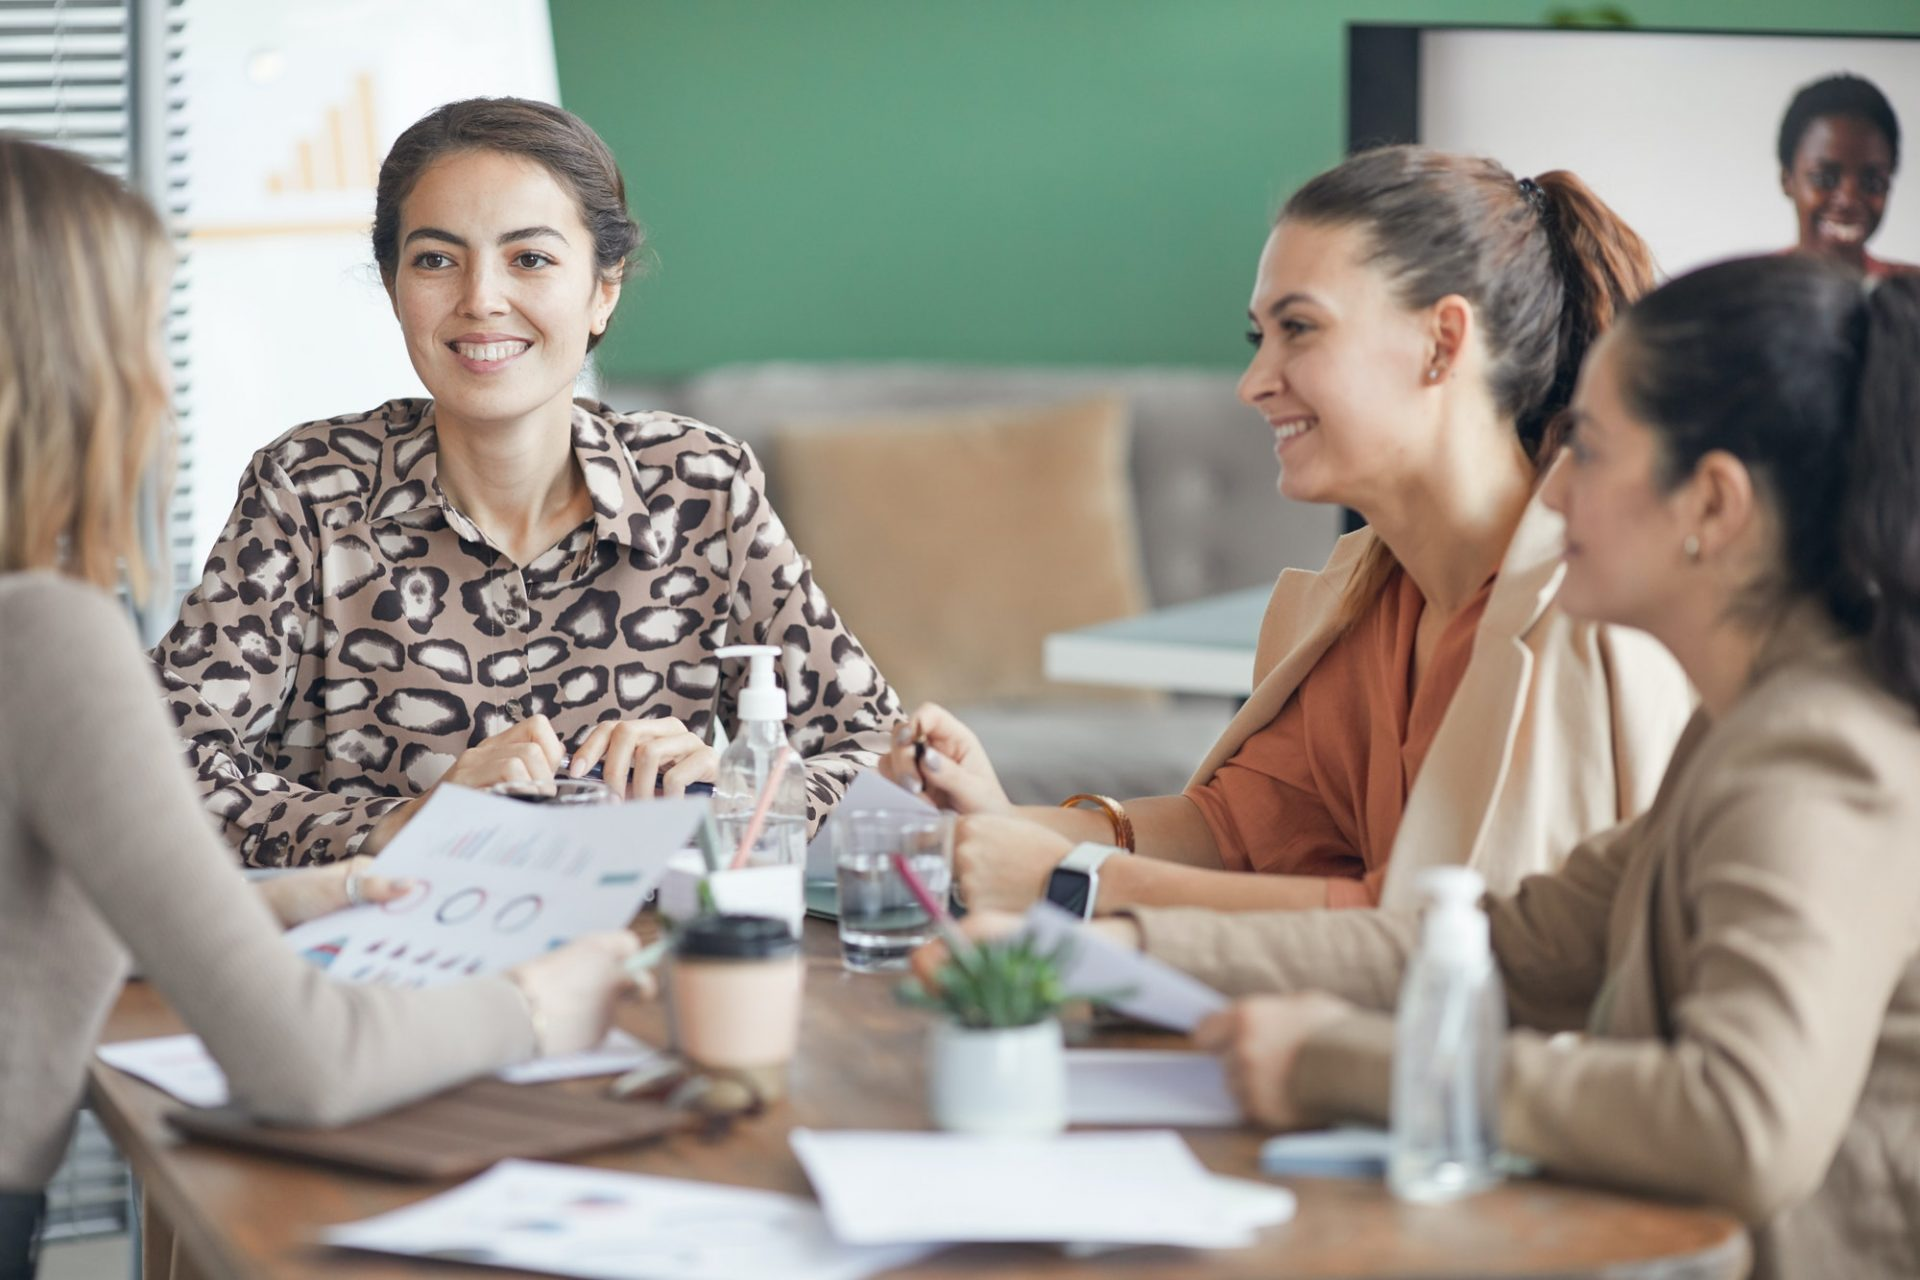 Group of Smiling Women in Business Meeting